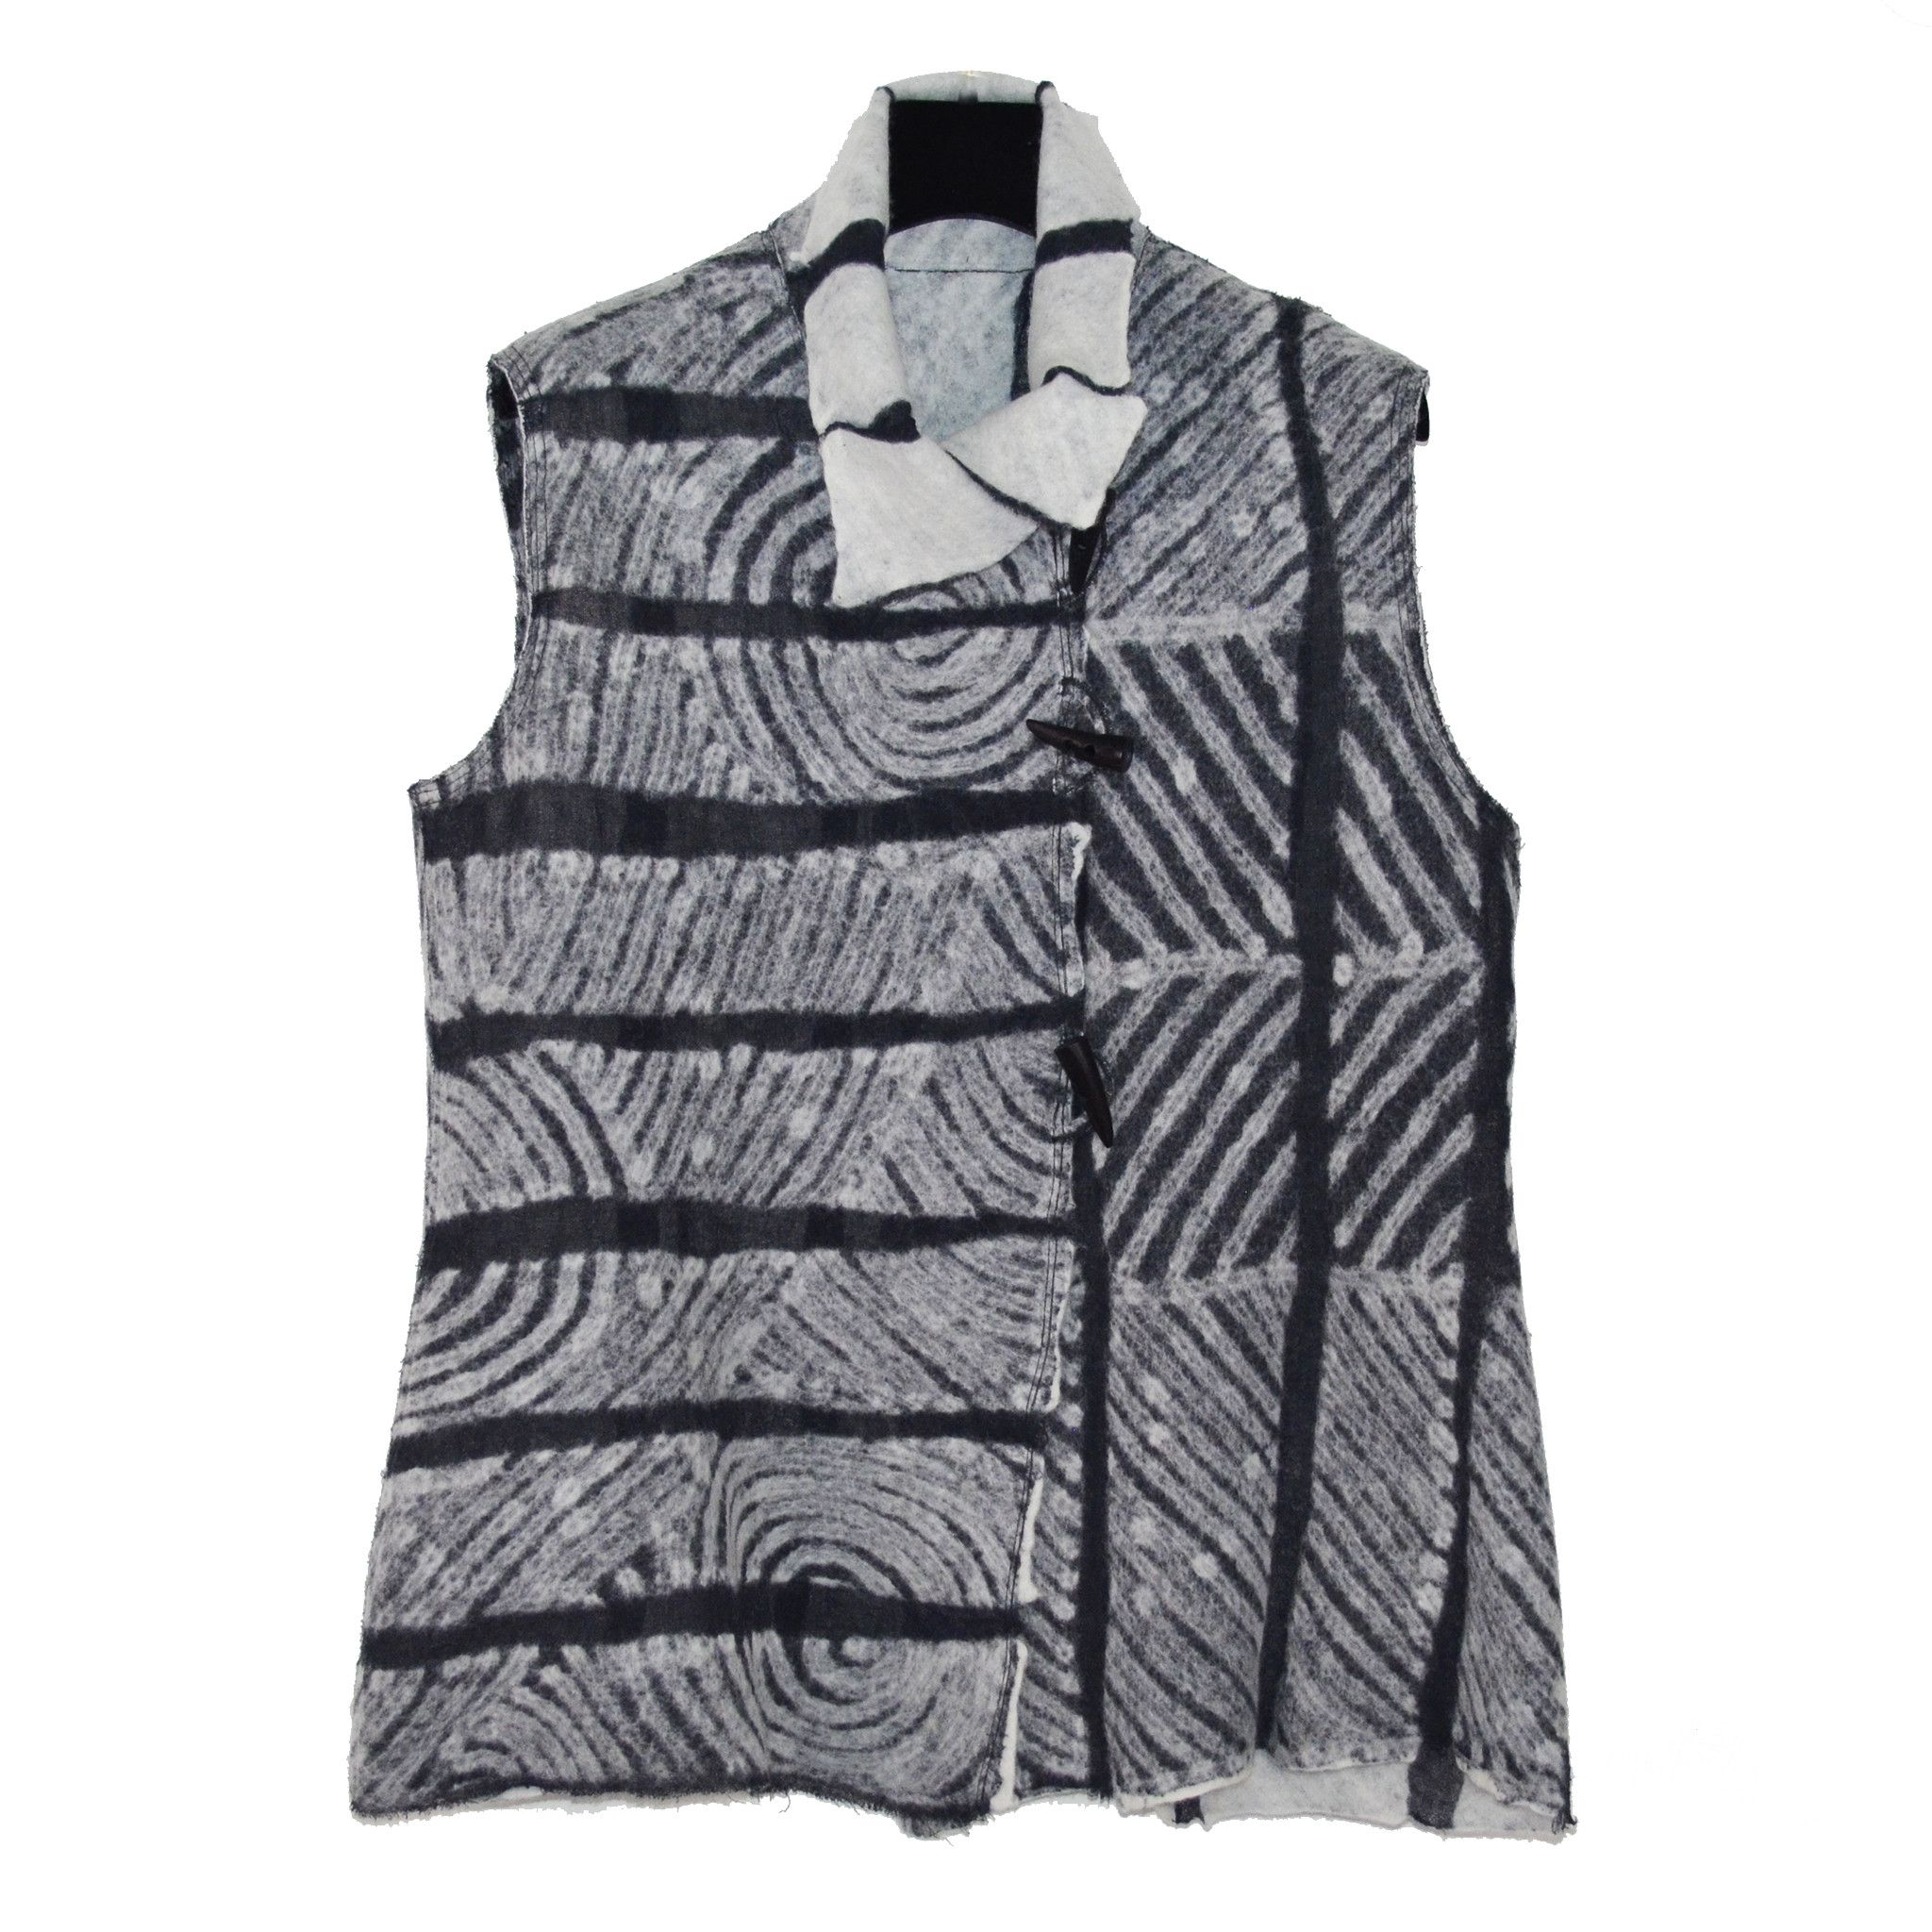 Maggy Pavlou Vest, Charcoal and White, S/M